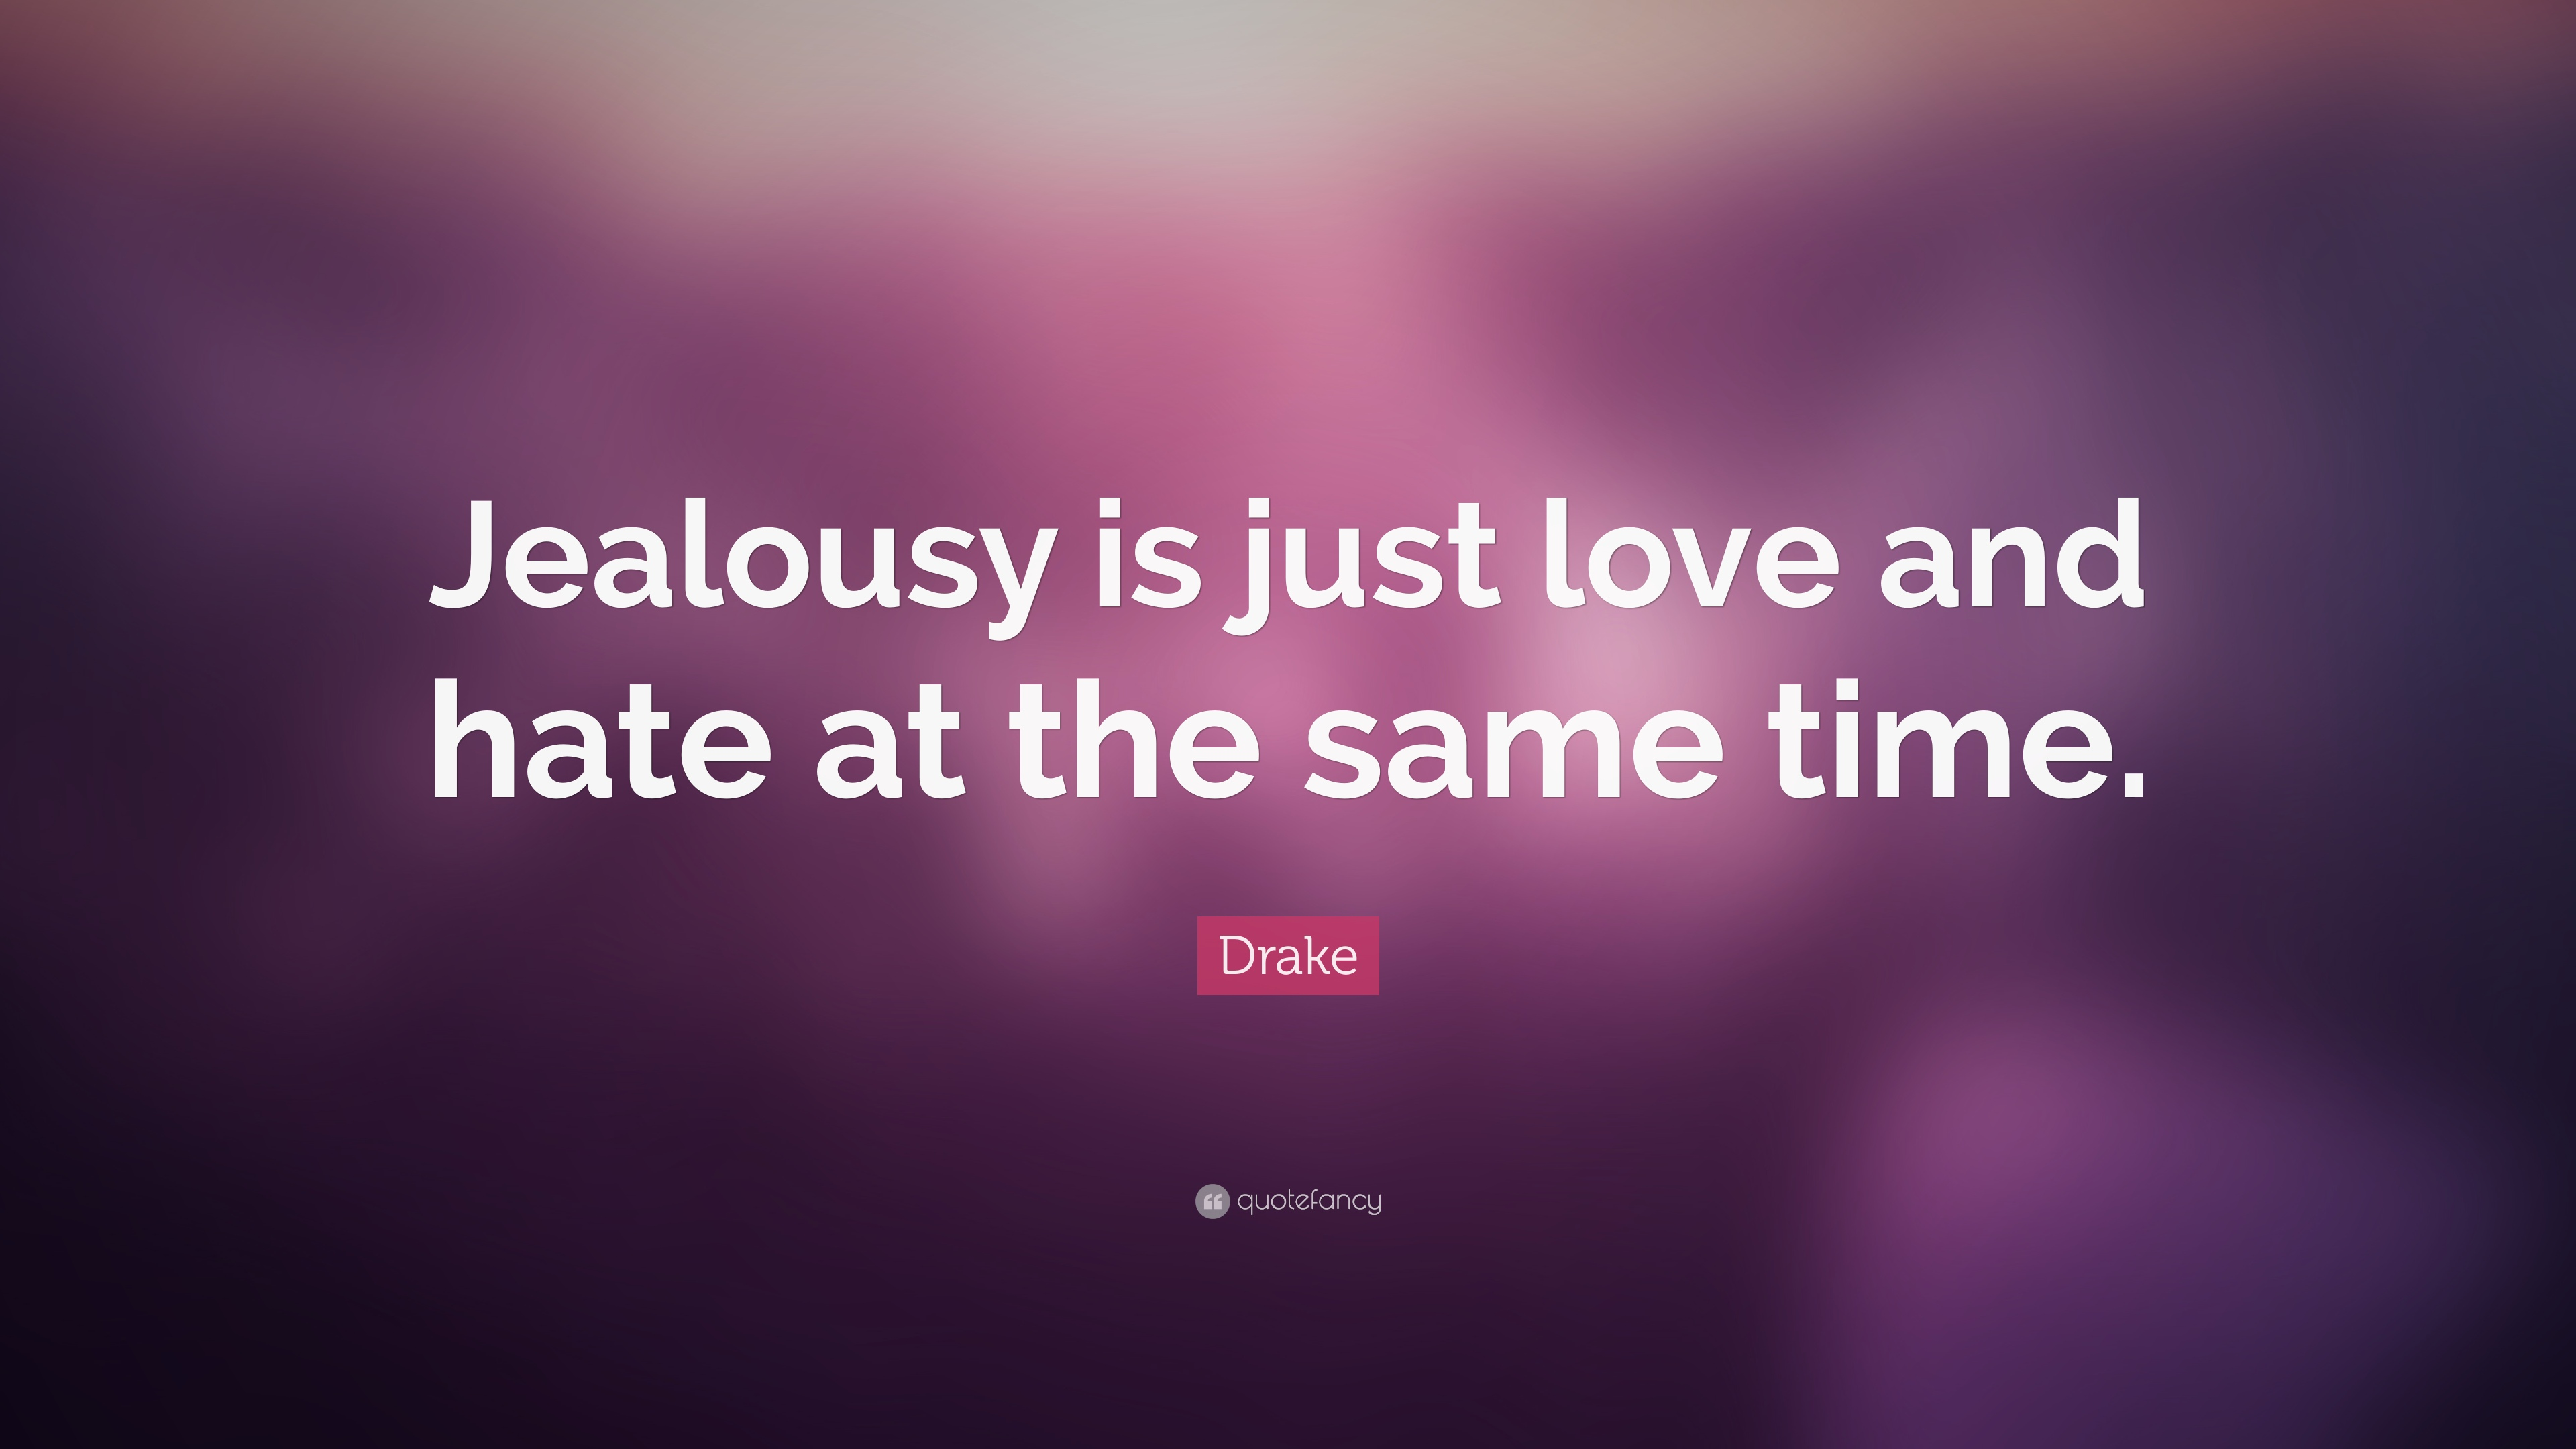 Hate Quotes: U201cJealousy Is Just Love And Hate At The Same Time.u201d